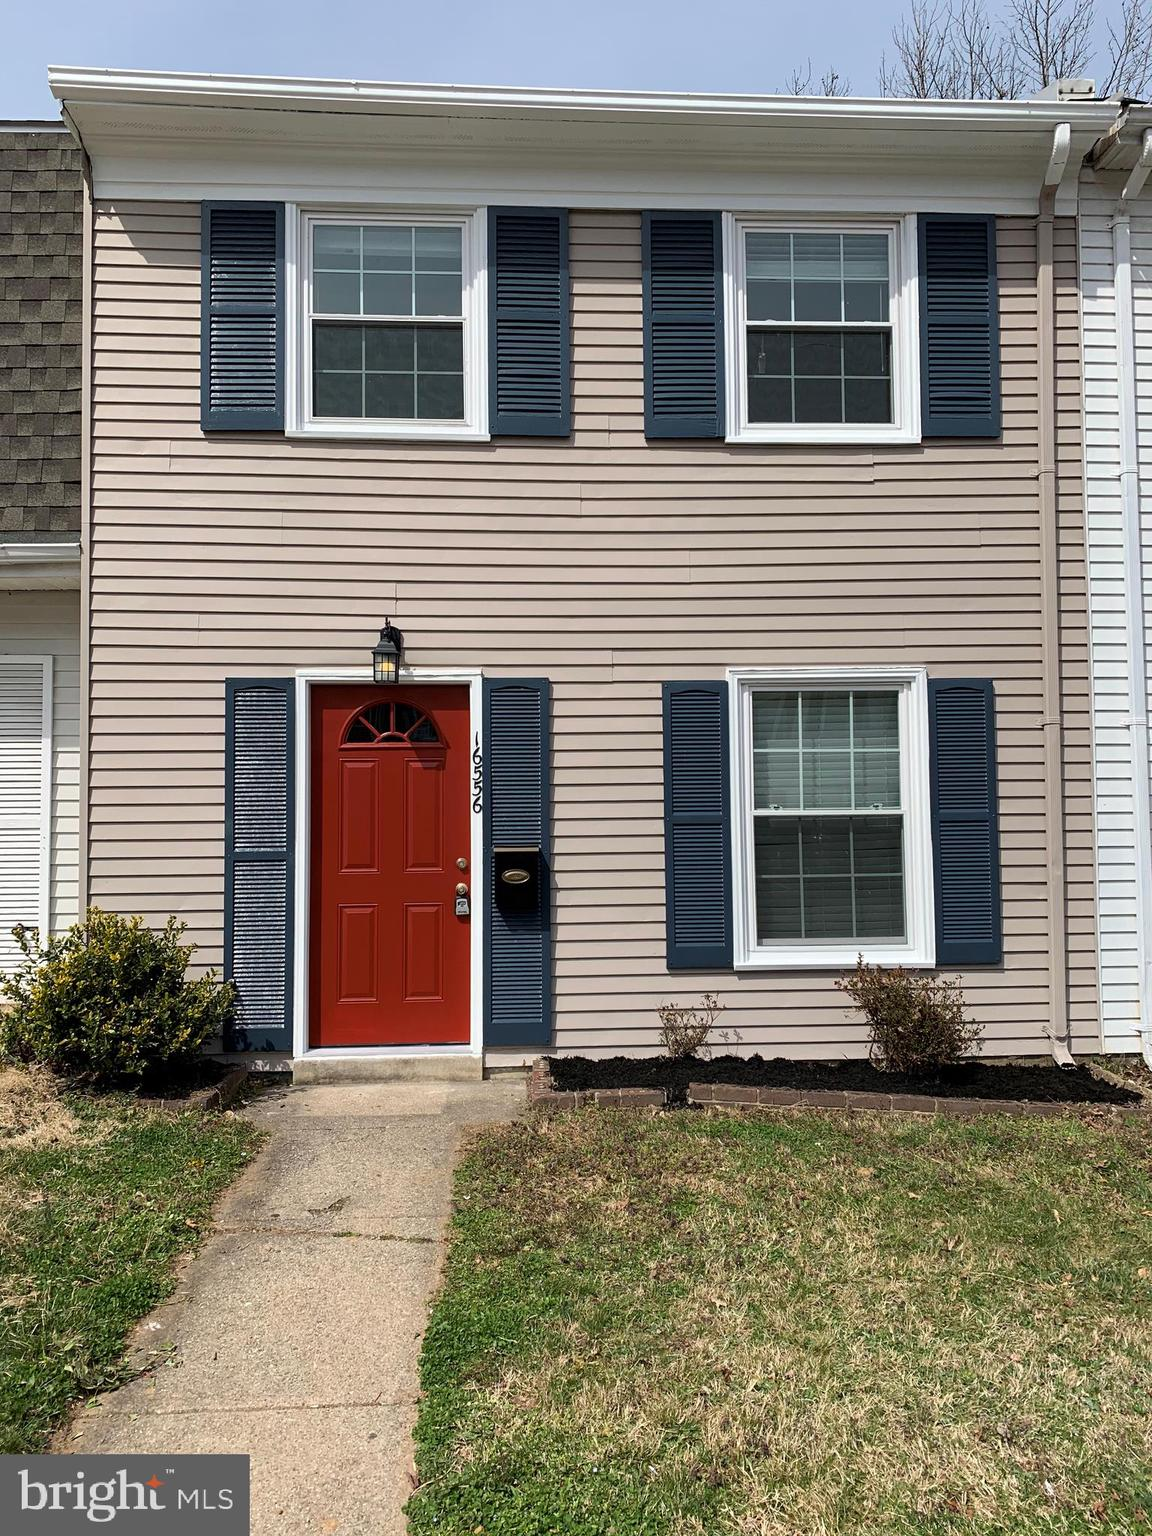 Charming 3 bedroom 2 level townhouse located in a convenient location in Woodbridge.  Tons of curb appeal with this property!  Property is move in ready, all you need to do is add your personal touches to make this YOUR home.  New replacement windows and front door recently installed.  The roof was replaced 5 years ago and electrical panel has been upgraded.  Easy access to public transportation.